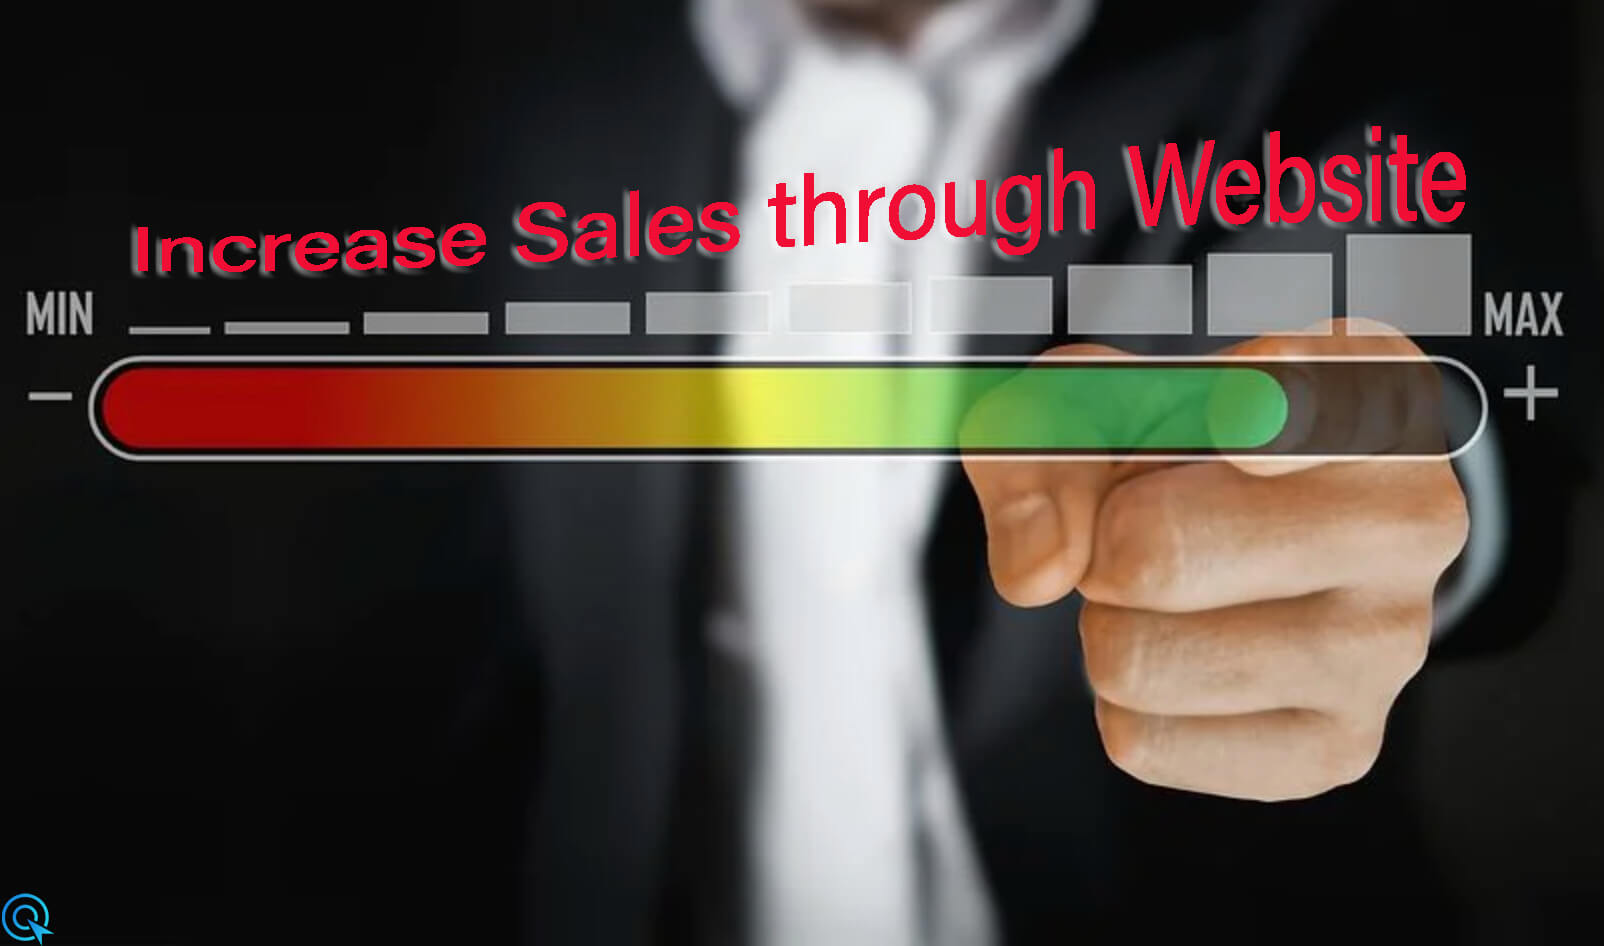 How to increase online sales from the website?